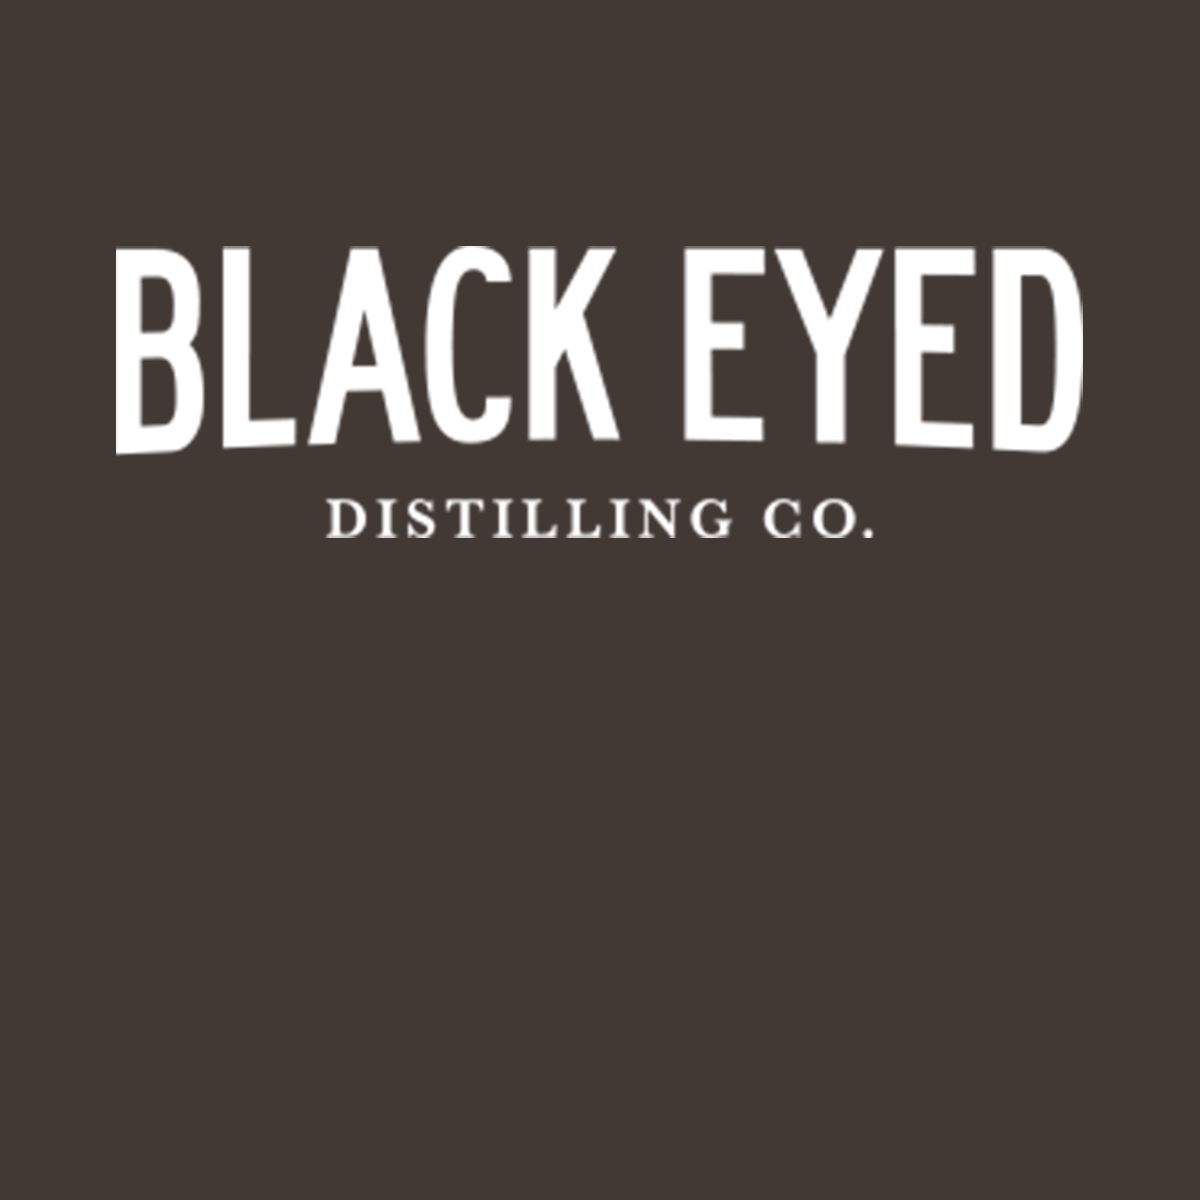 BlackEyed Distilling Co.